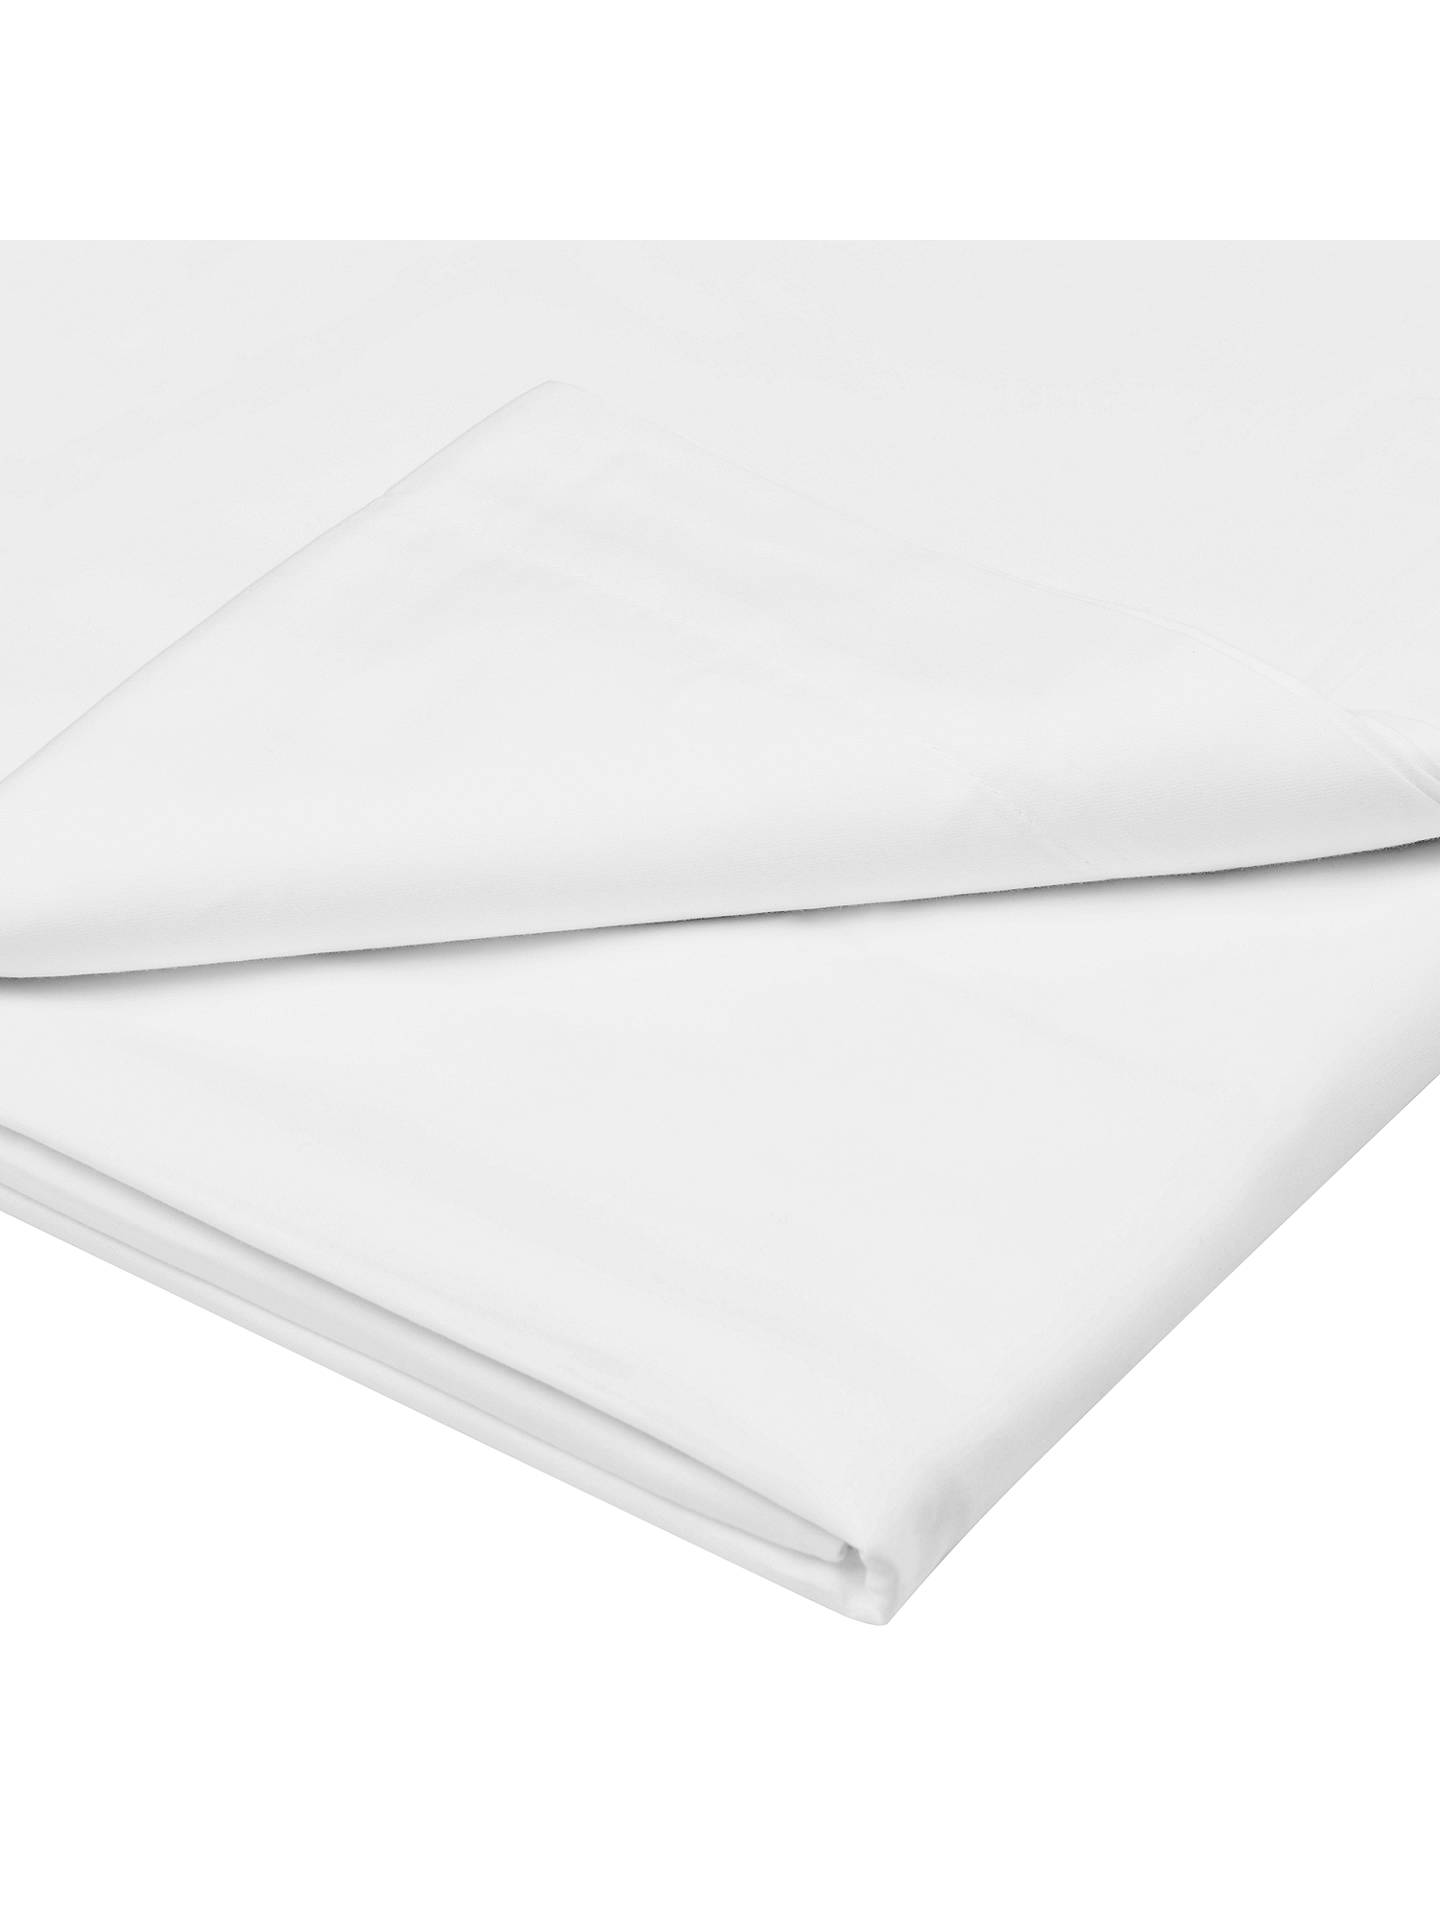 BuyJohn Lewis & Partners Crisp and Fresh 200 Thread Count Egyptian Cotton Flat Sheet, Single, White Online at johnlewis.com